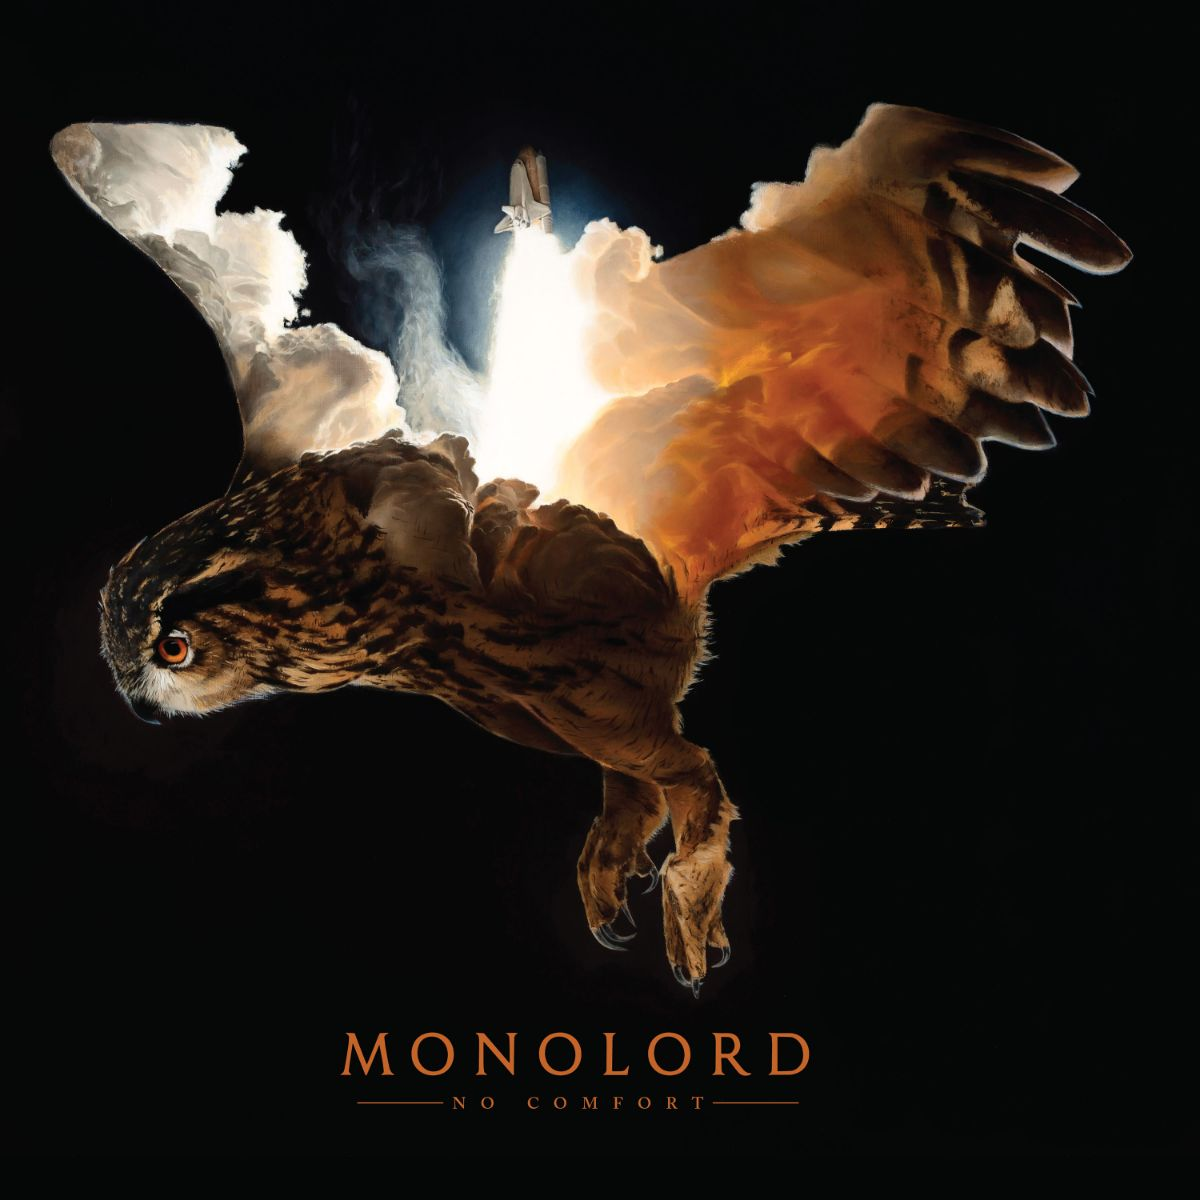 monolord no comfort